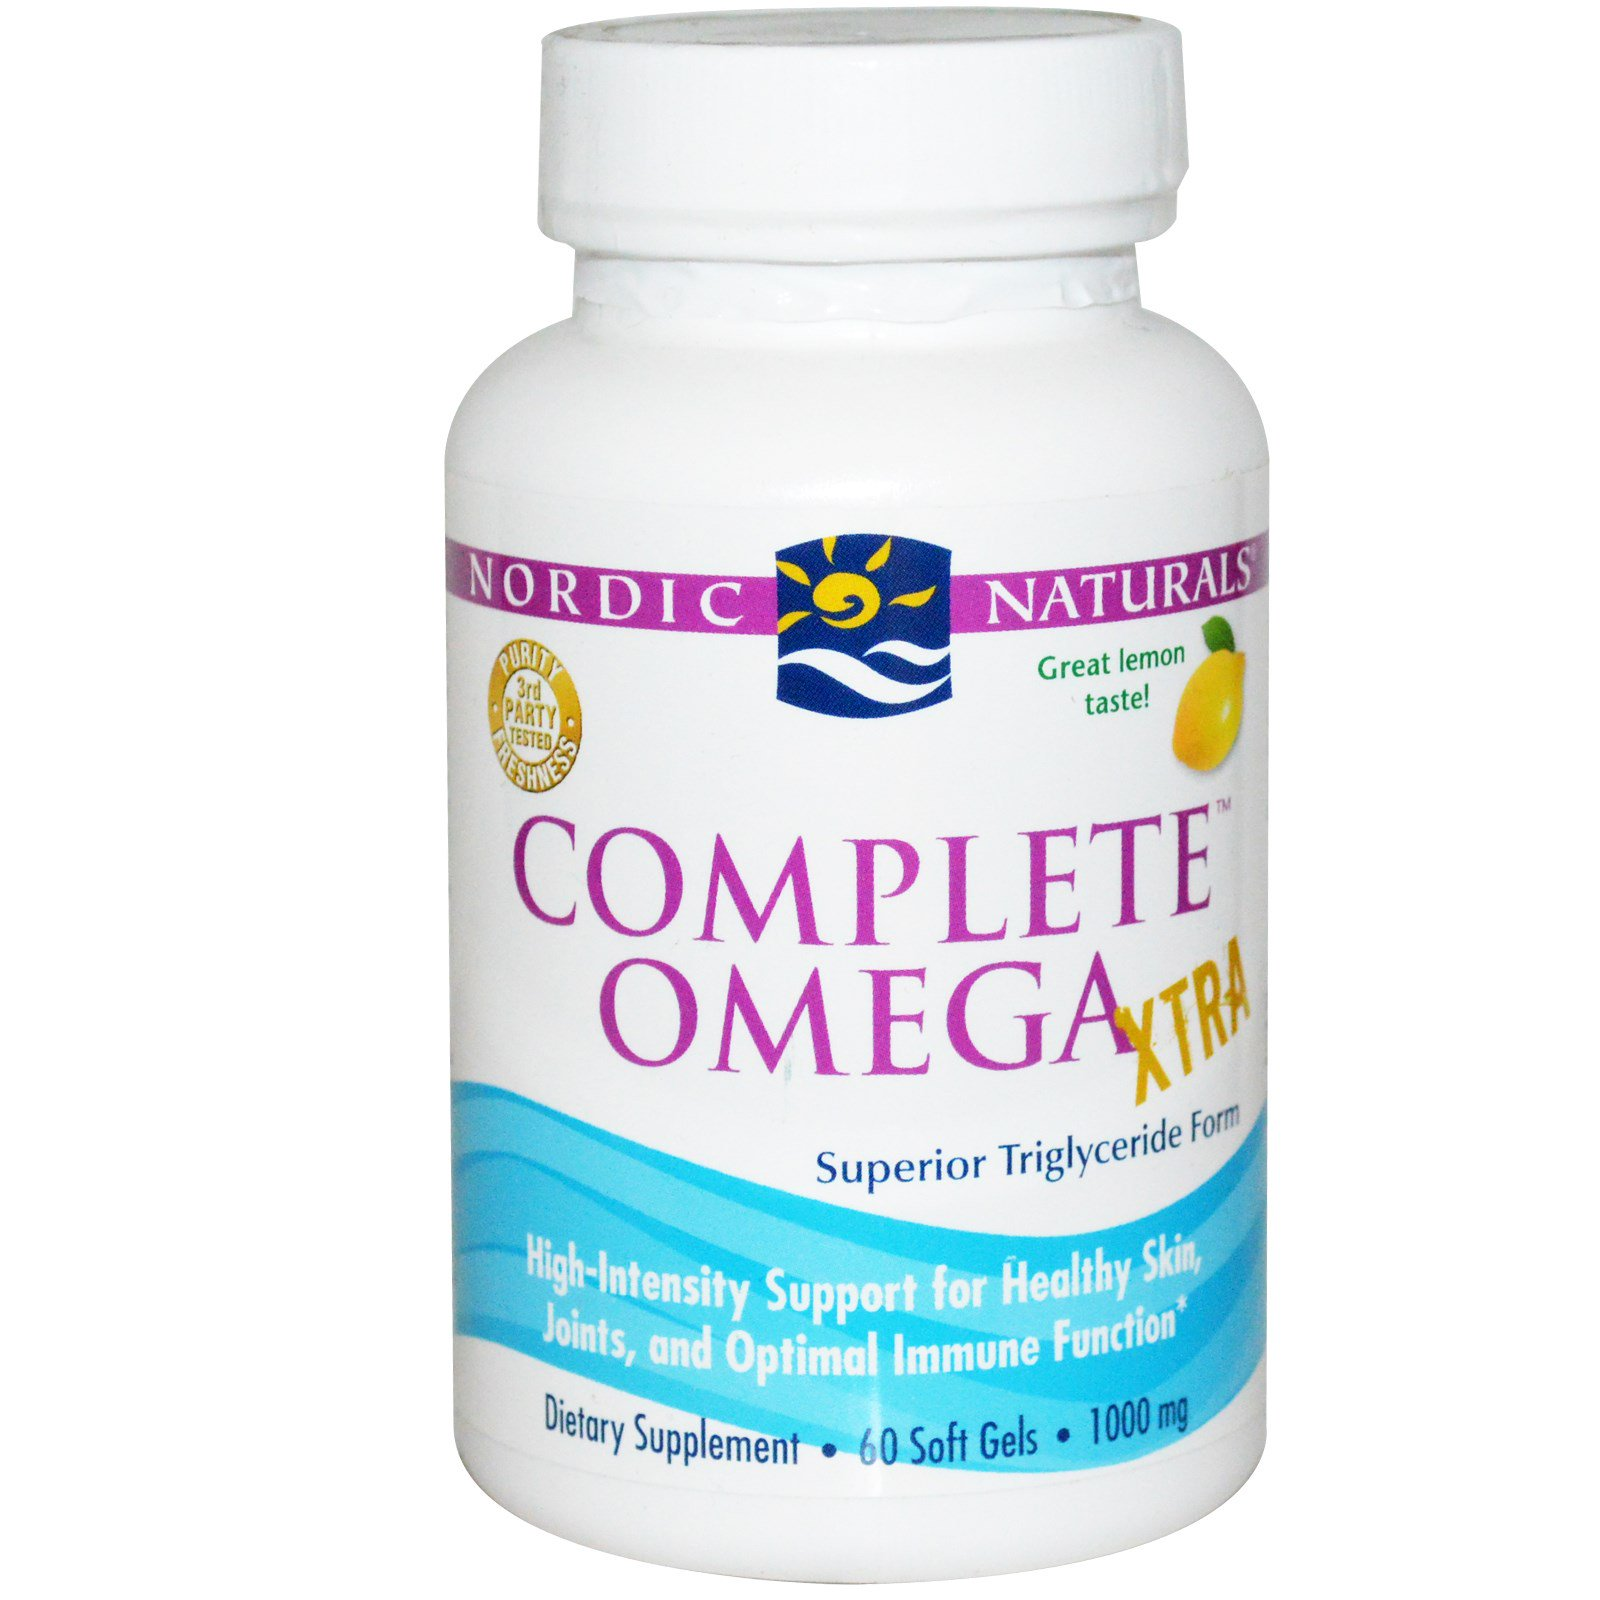 Nordic Naturals, Complete Omega Xtra, со вкусом лимона, 1000 мг, 60 гелевых капсул